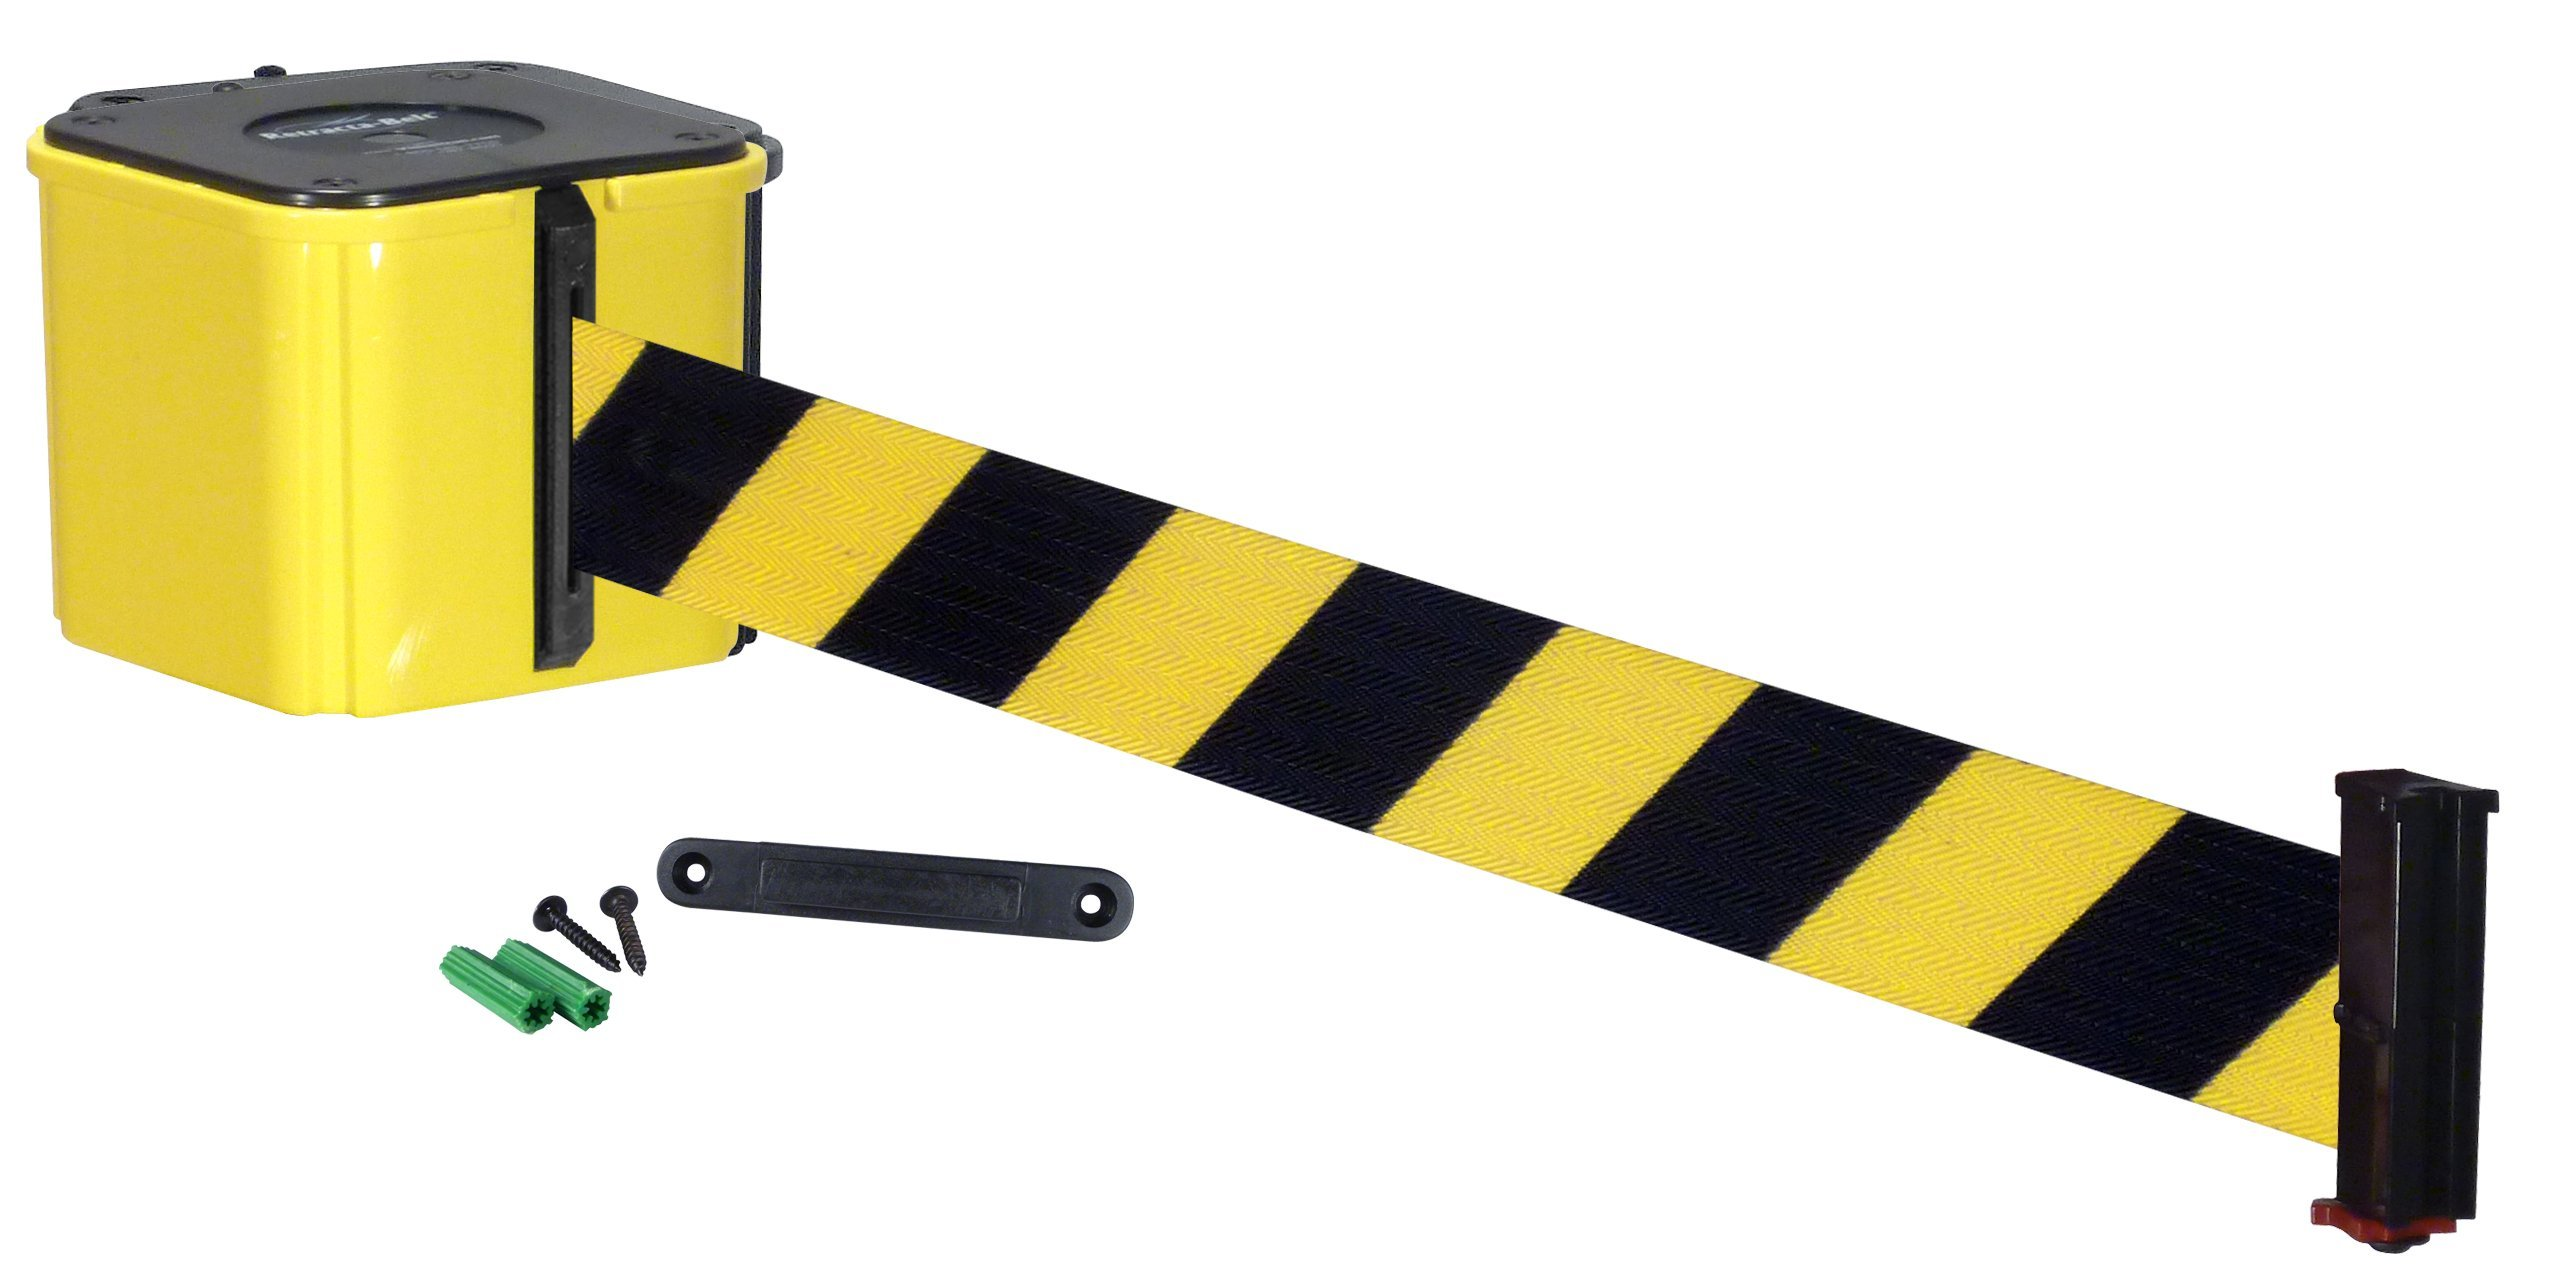 Visiontron WM412-auto-15YW-BYD Economy Wall Mount 15' Automatic Retracting Unit w/Standard Fixed/Removable Wall Plate - Yellow with Black/Yellow Stripe Belt, Standard Belt End